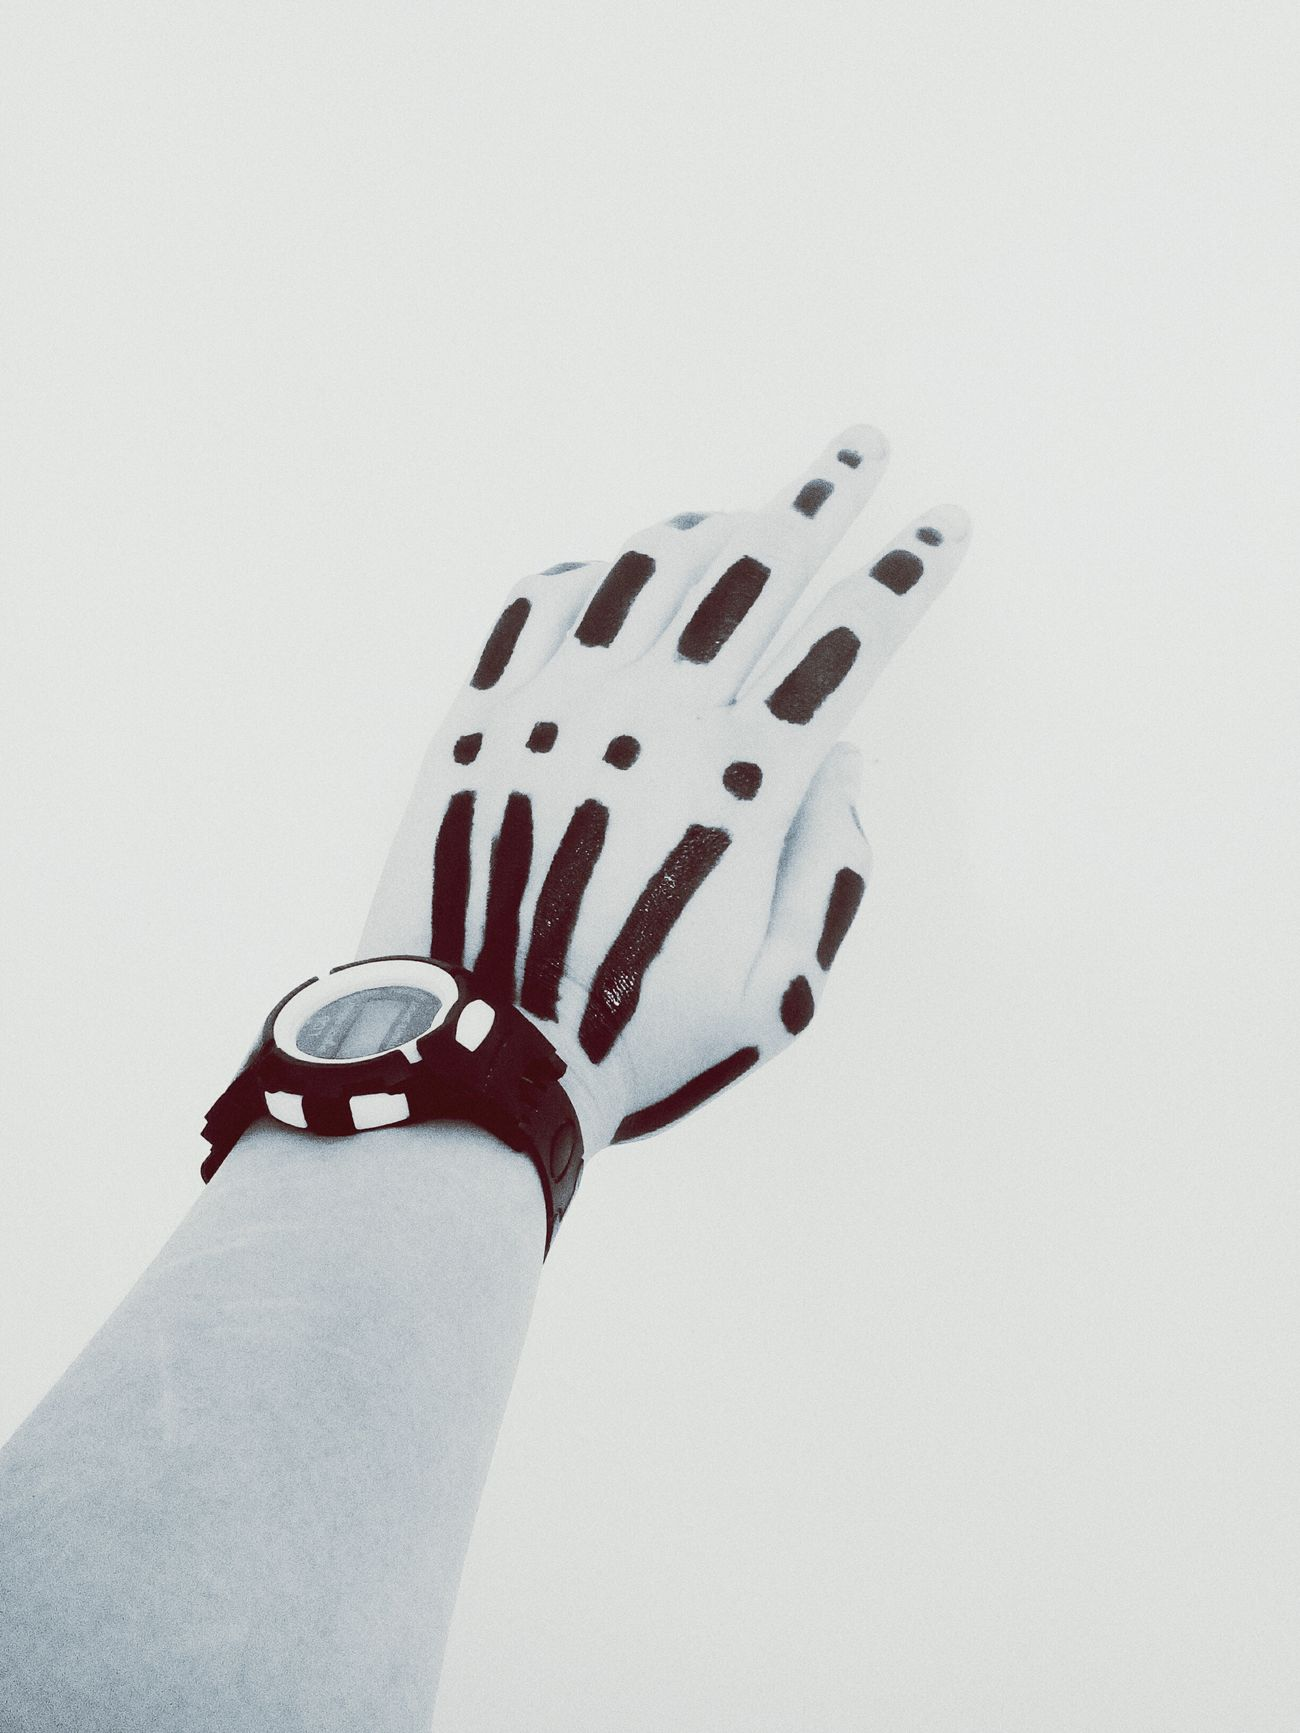 Day рука скелет Human Body Part People White Background Adult Outdoors Spotted Close-up Human Hand Polka Dot One Person Adults Only First Eyeem Photo